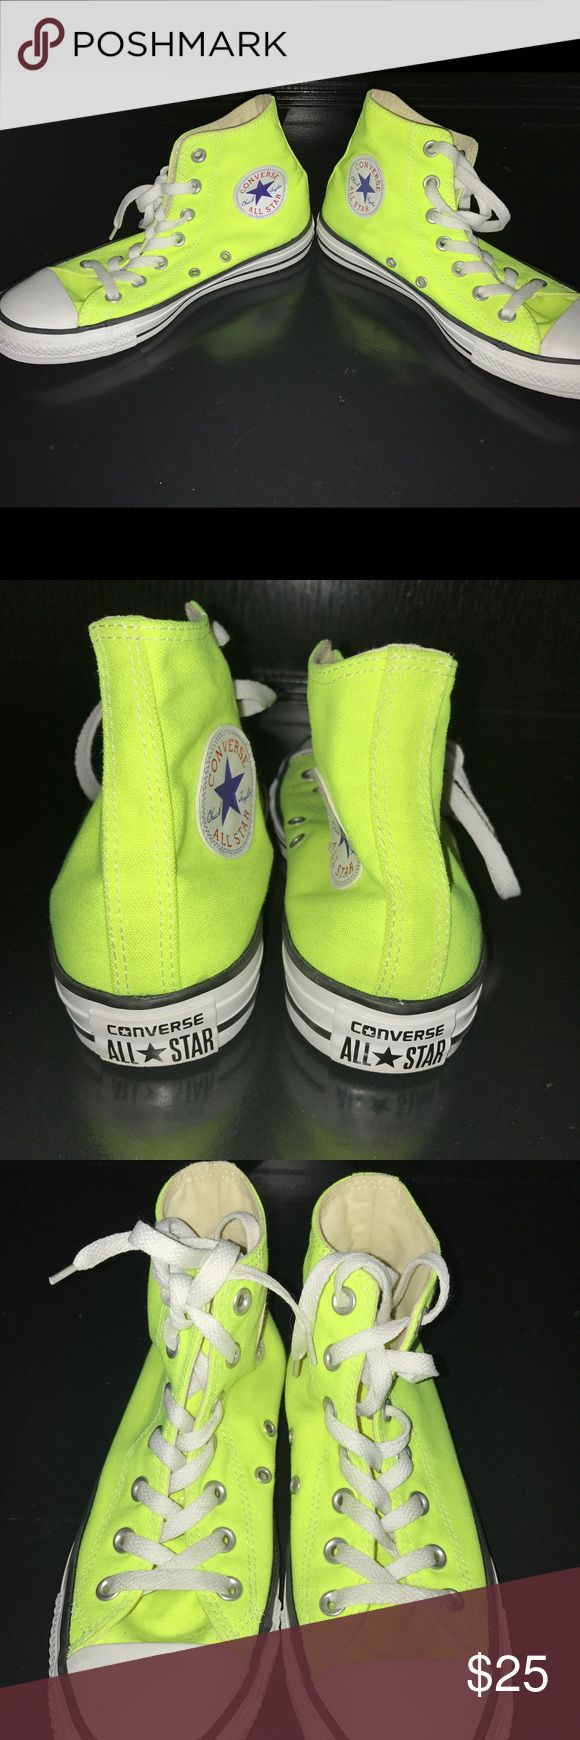 Best 25 Neon Converse Shoes Ideas On Pinterest Neon